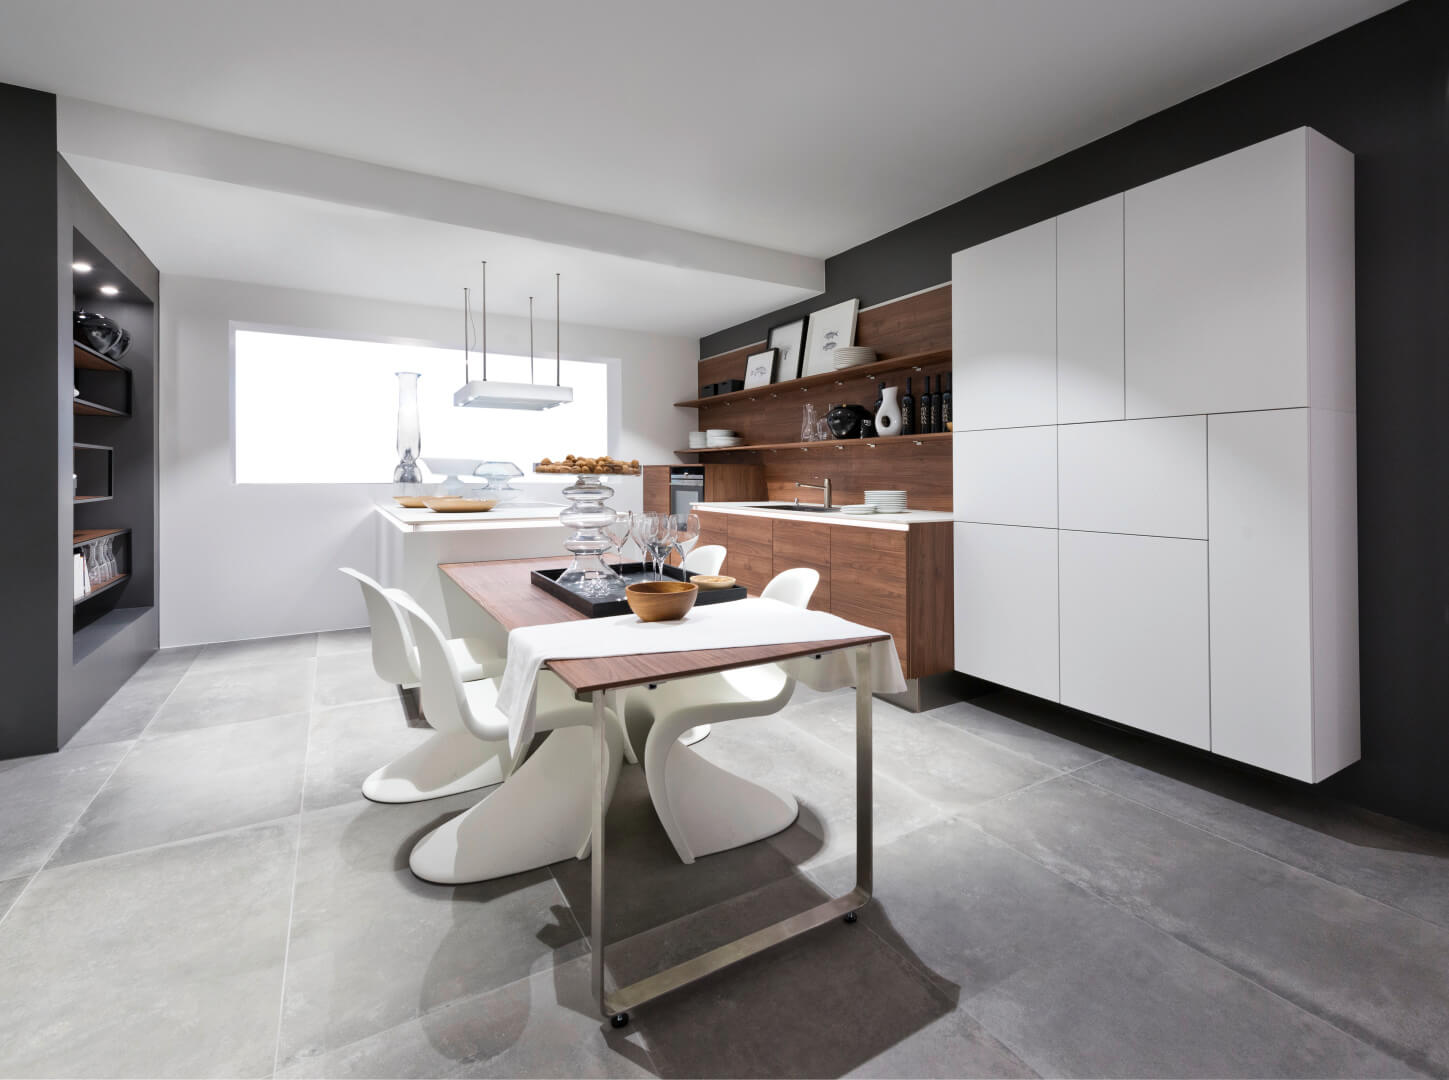 Nolte-Kitchens-Feel-Gallery5